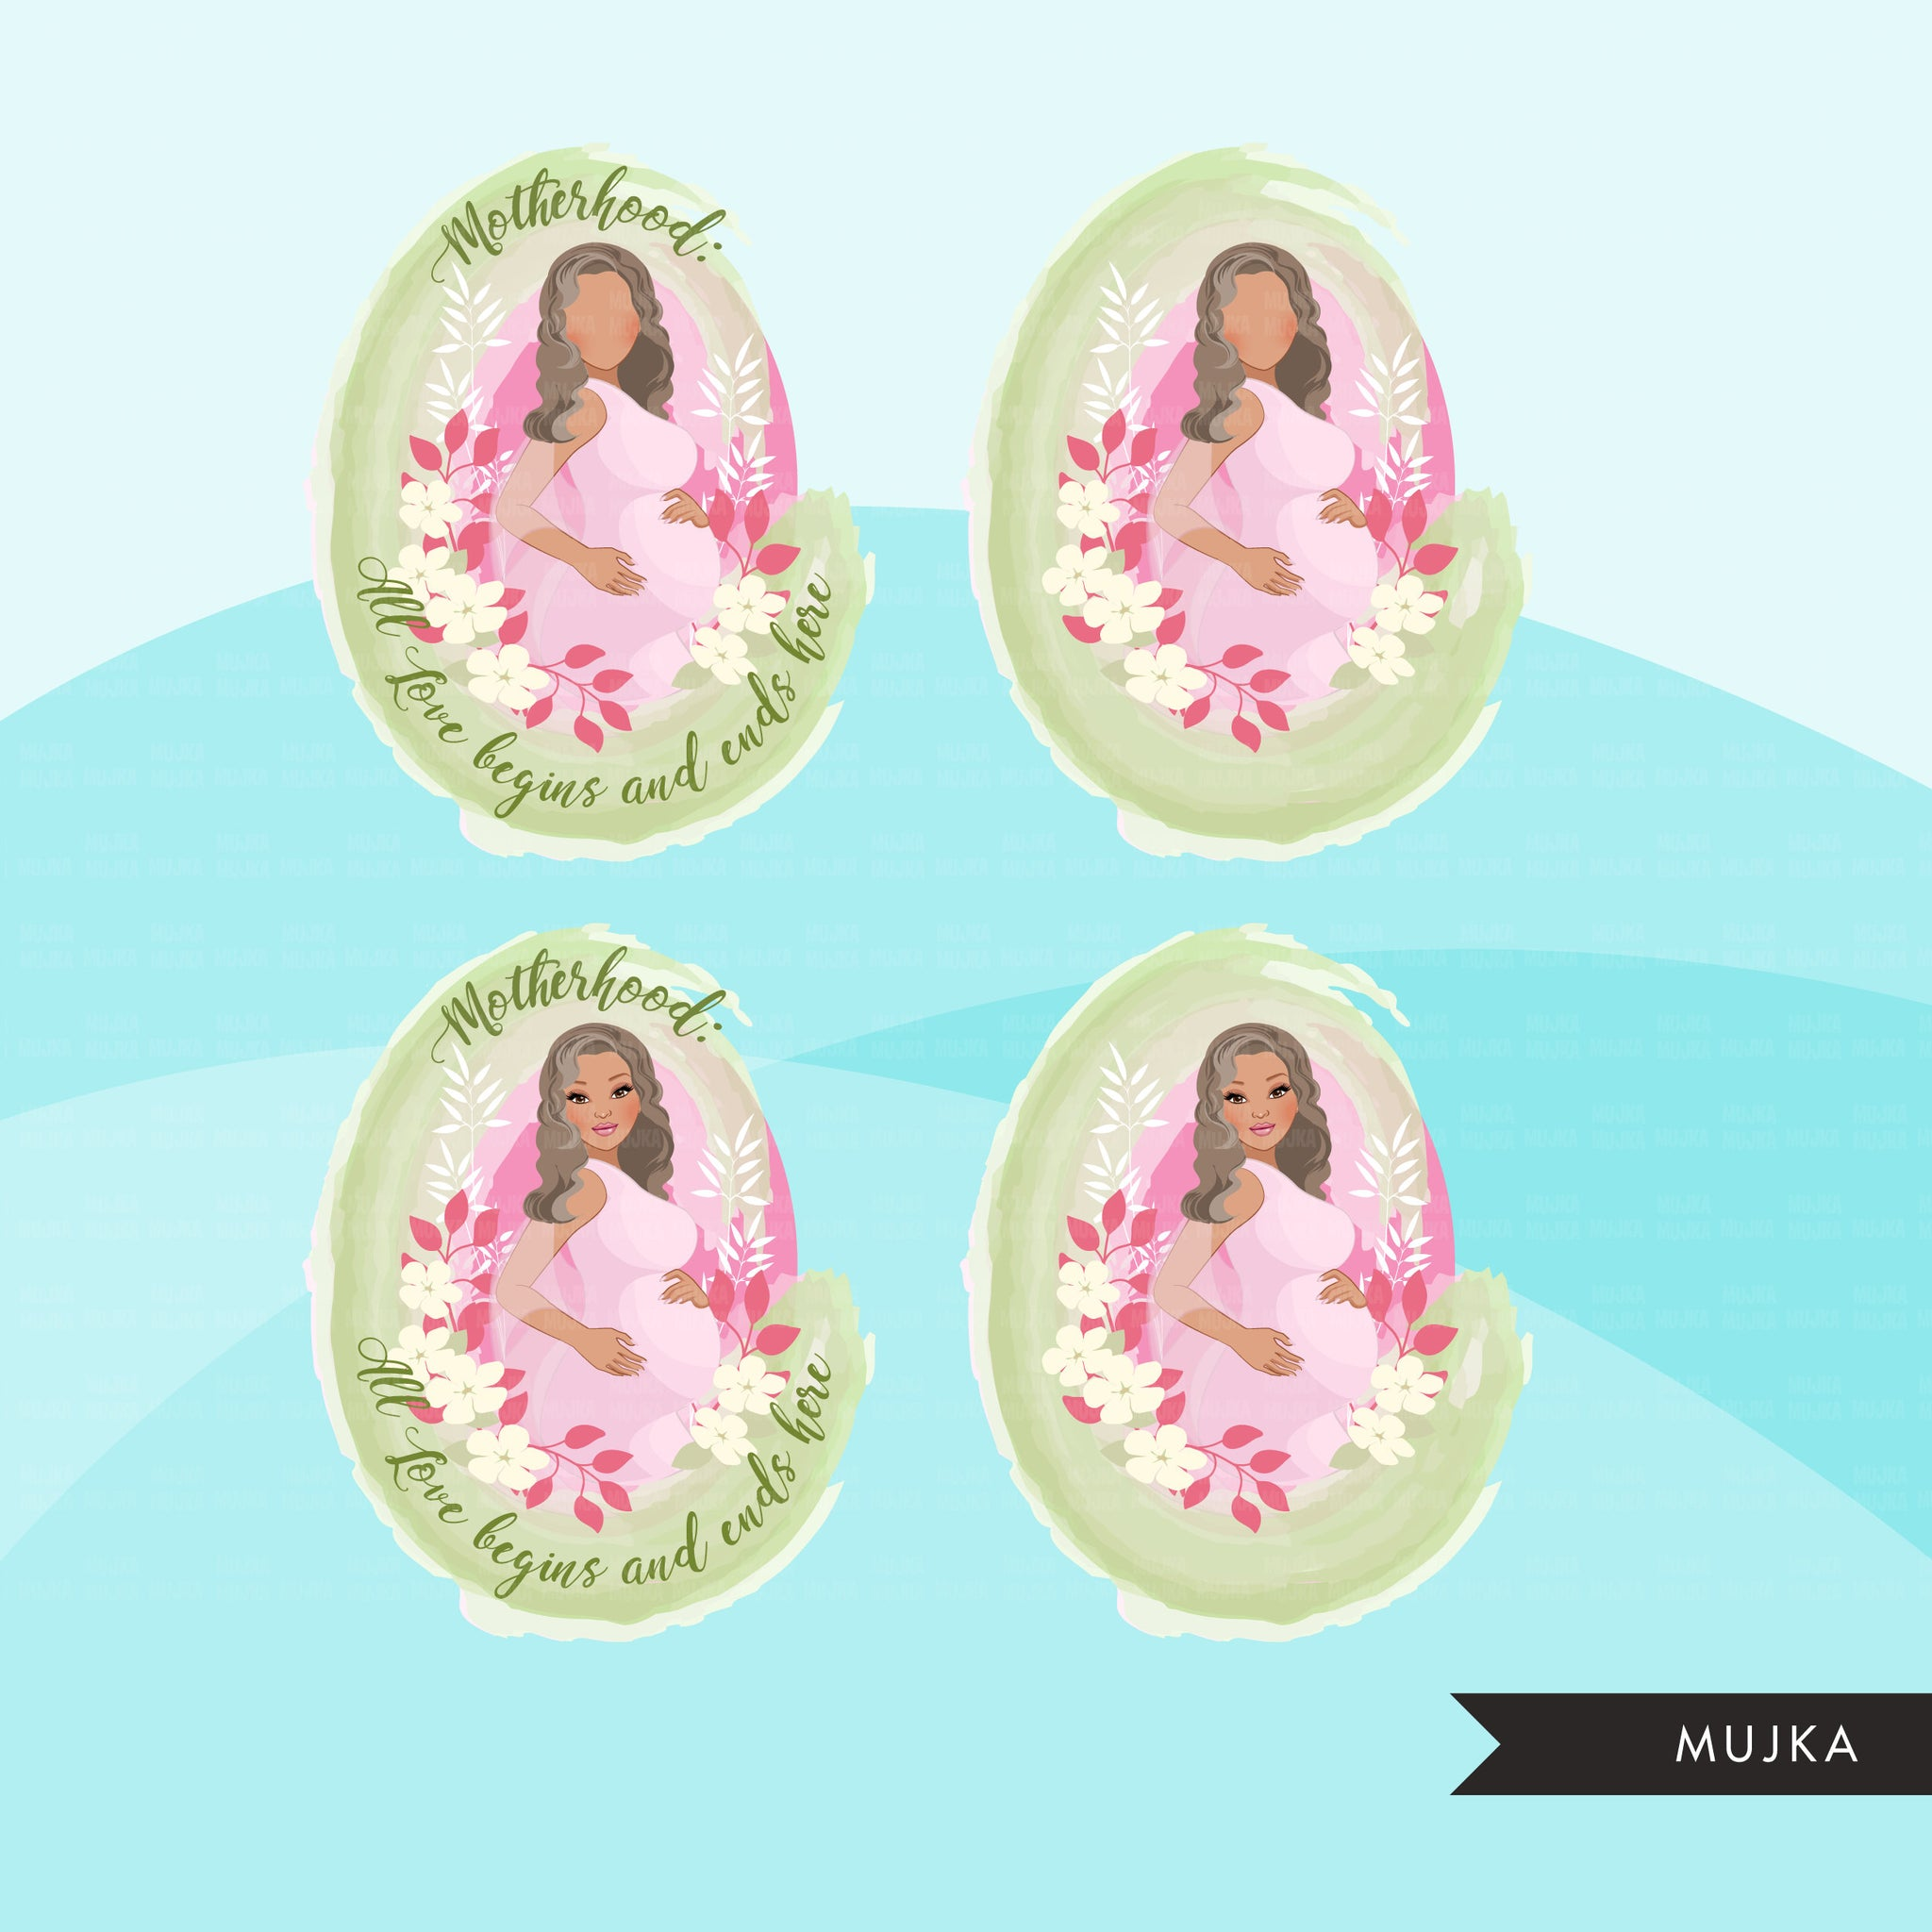 Mothers Day clipart, mother's day sublimation designs digital download, baby shower favors, wall art, pregnant Latino woman png